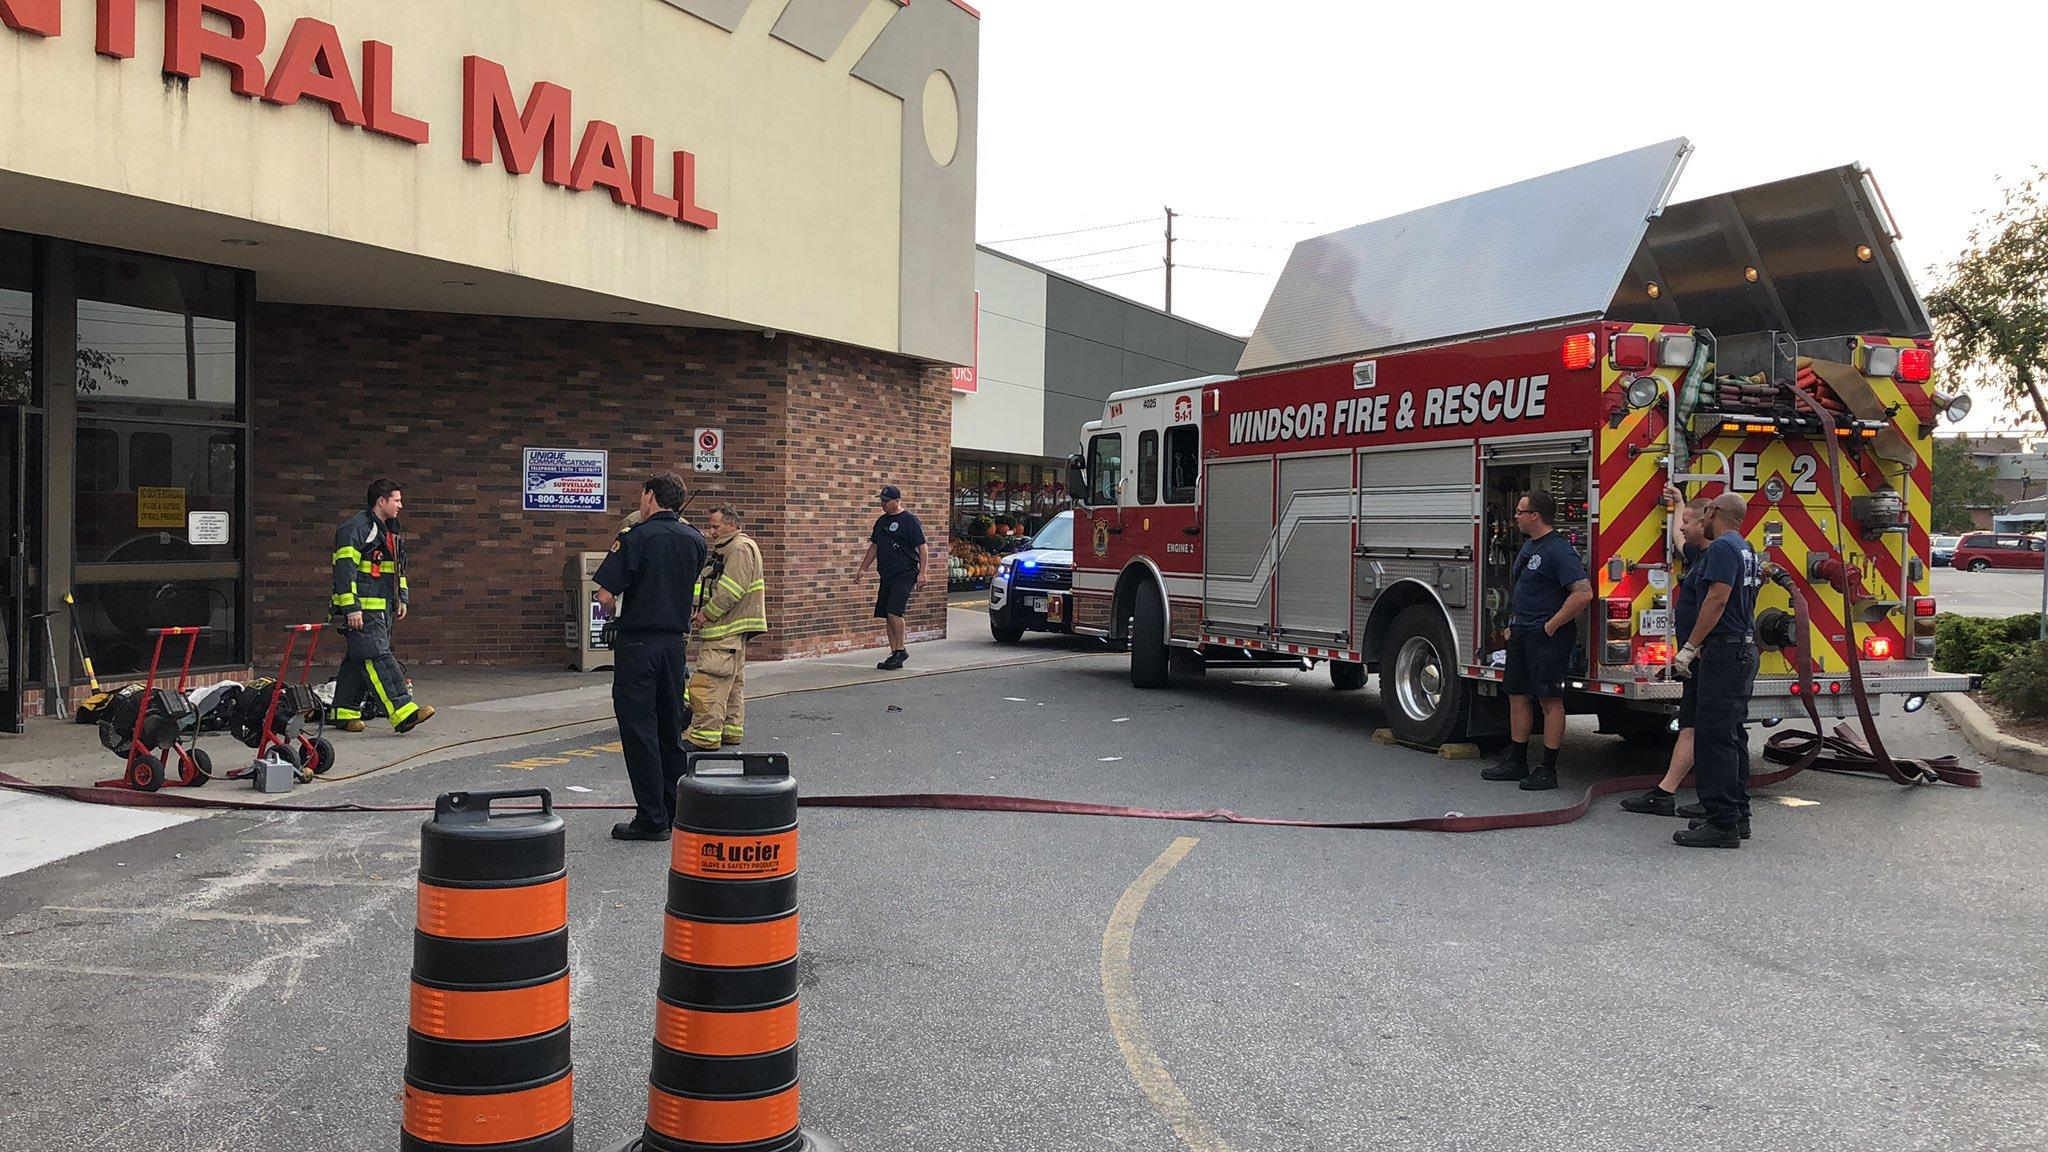 am800-news-central-mall-smoke-fire-september-20-2019